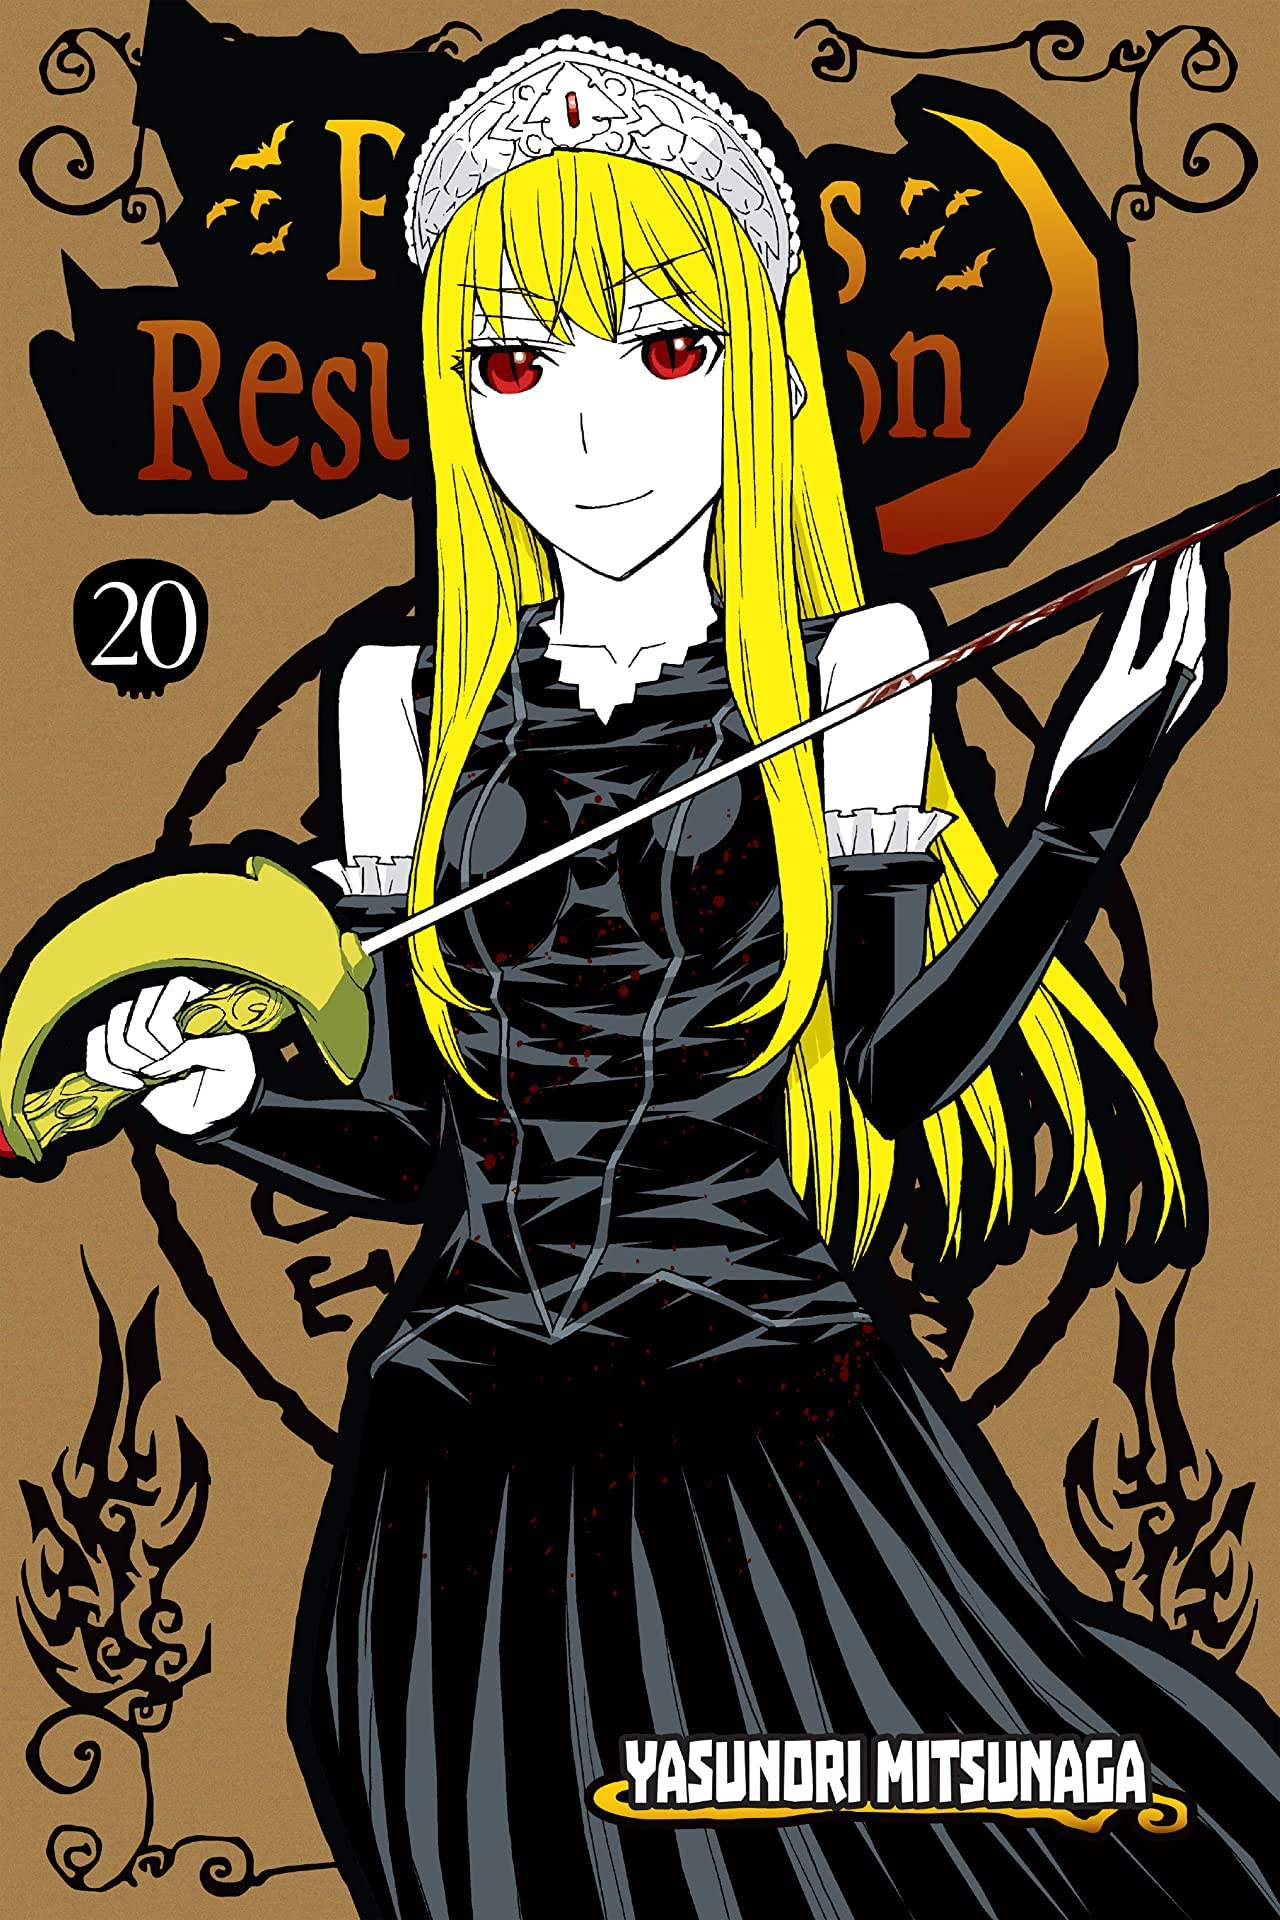 Princess Resurrection Vol. 20